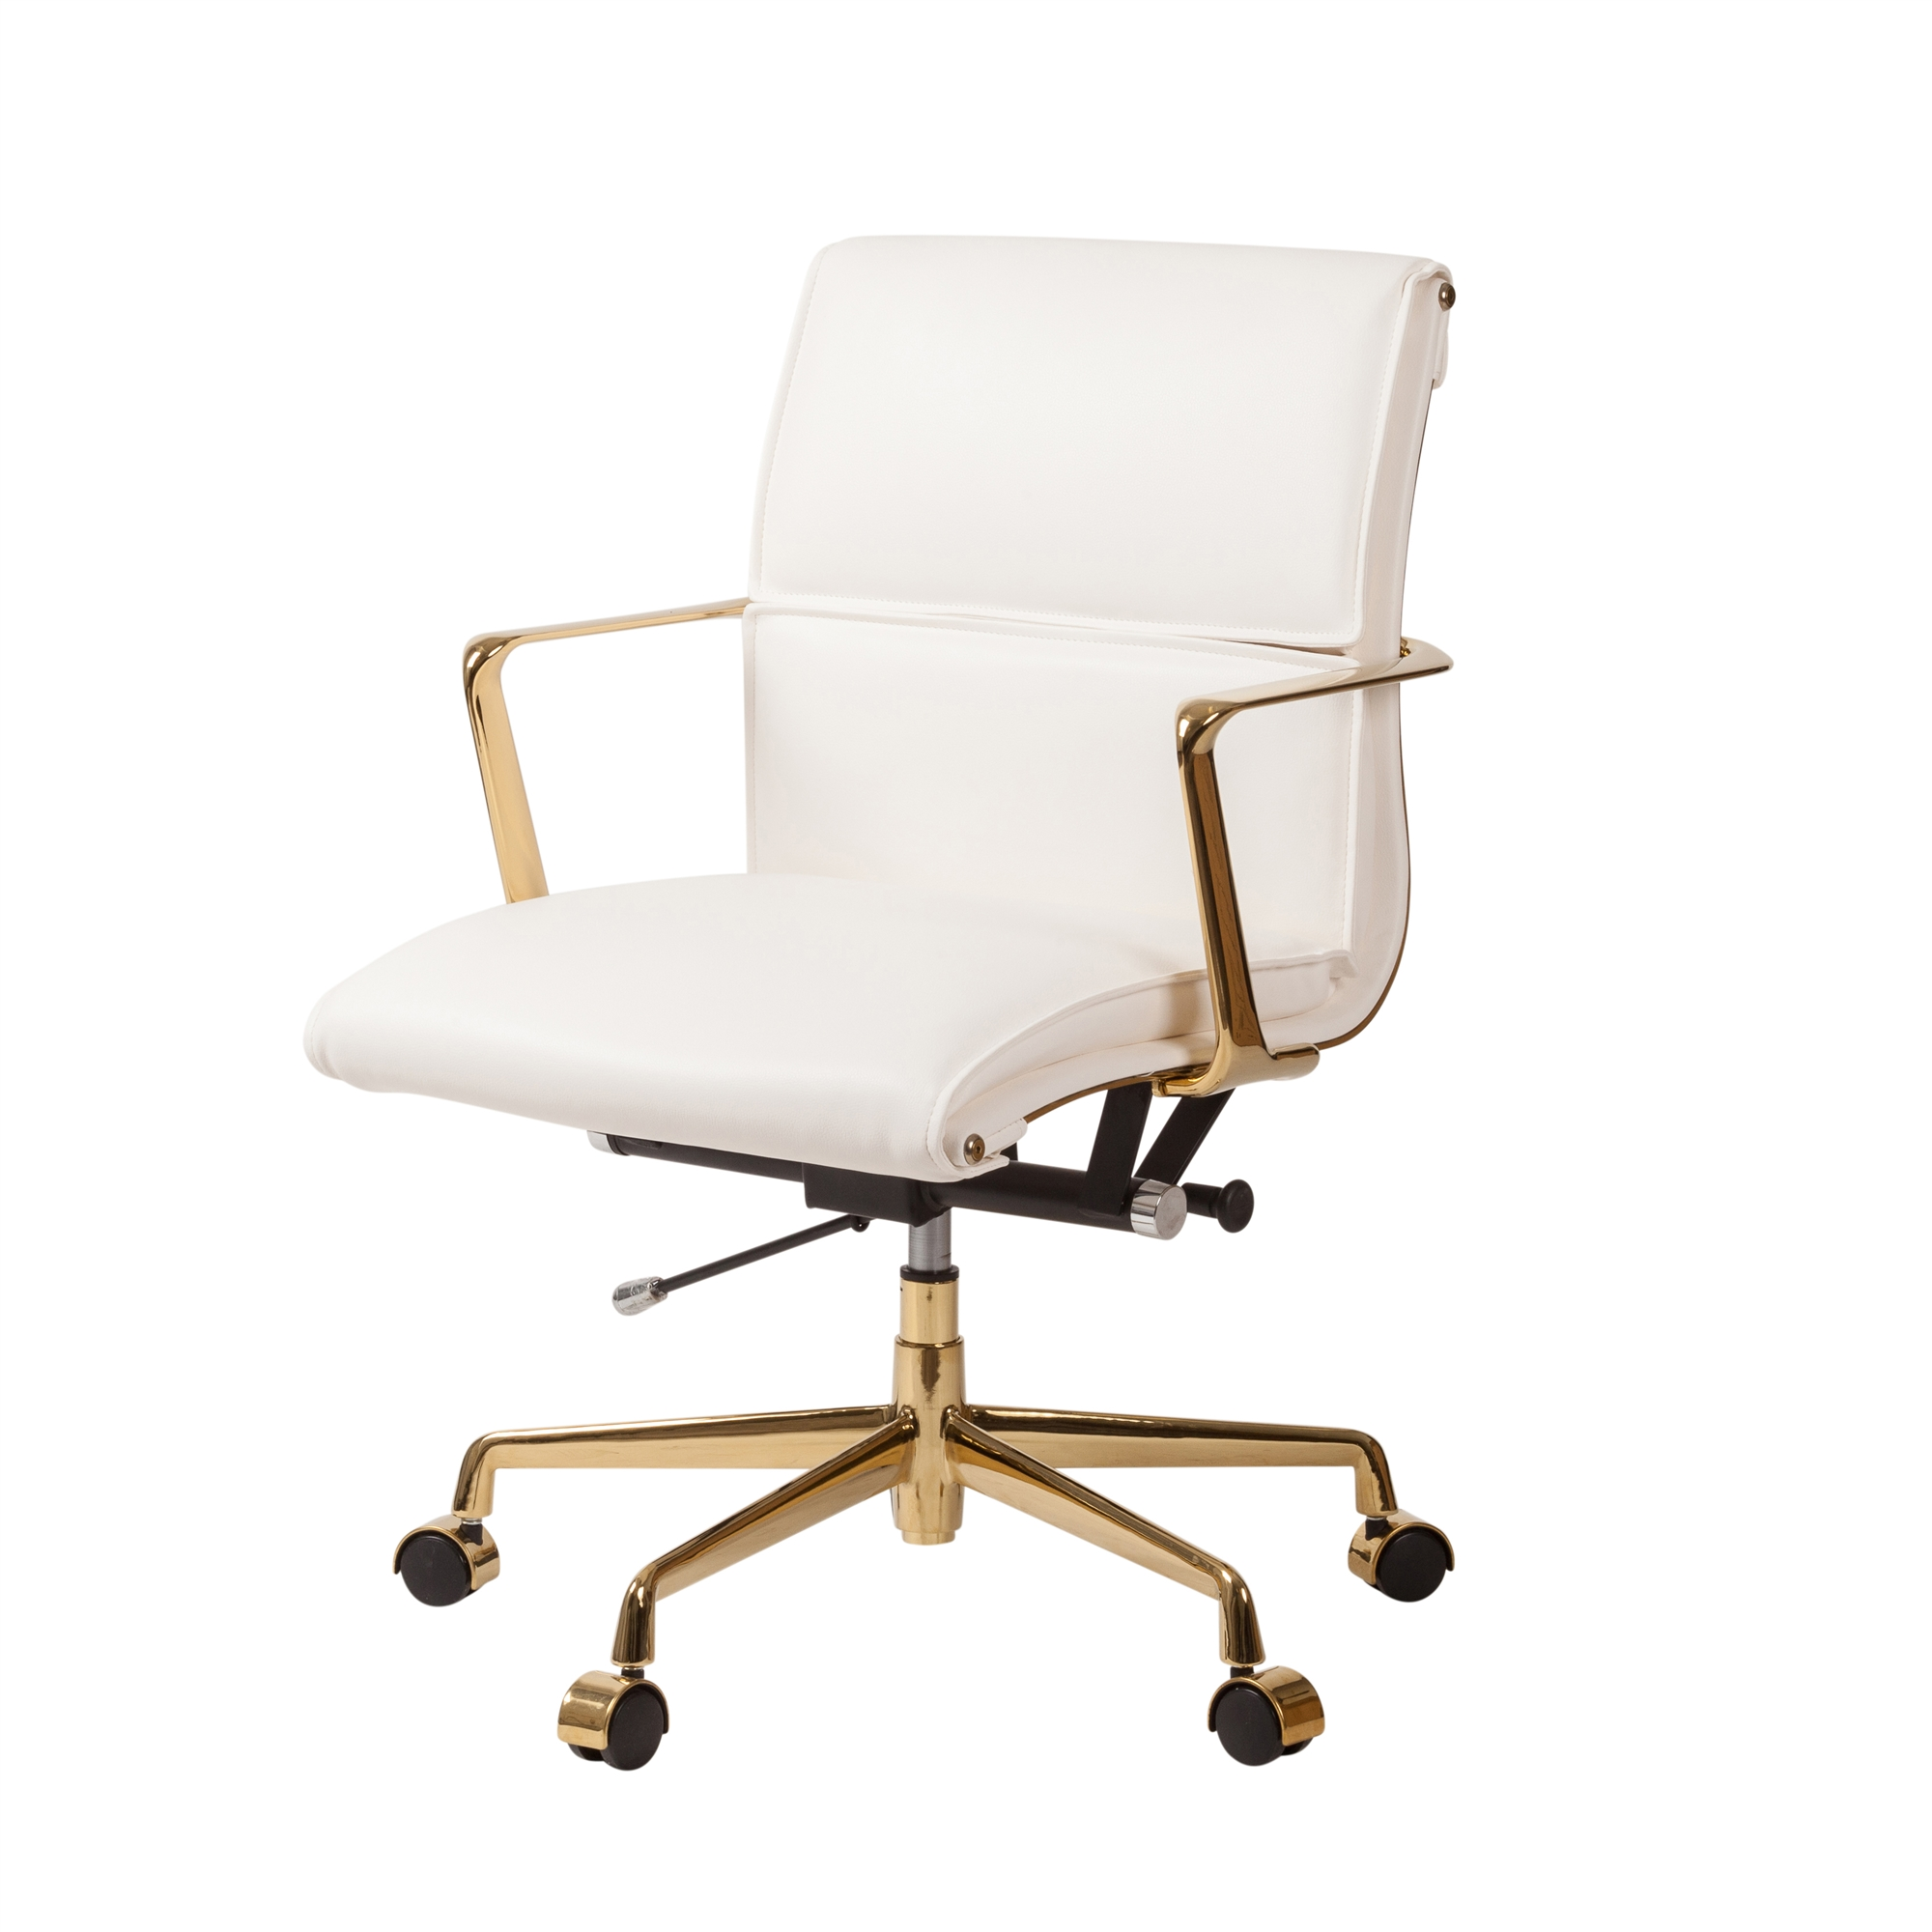 Fabulous Cooper Mid Century Modern Office Chair With Gold Base White Leather Interior Design Ideas Inesswwsoteloinfo